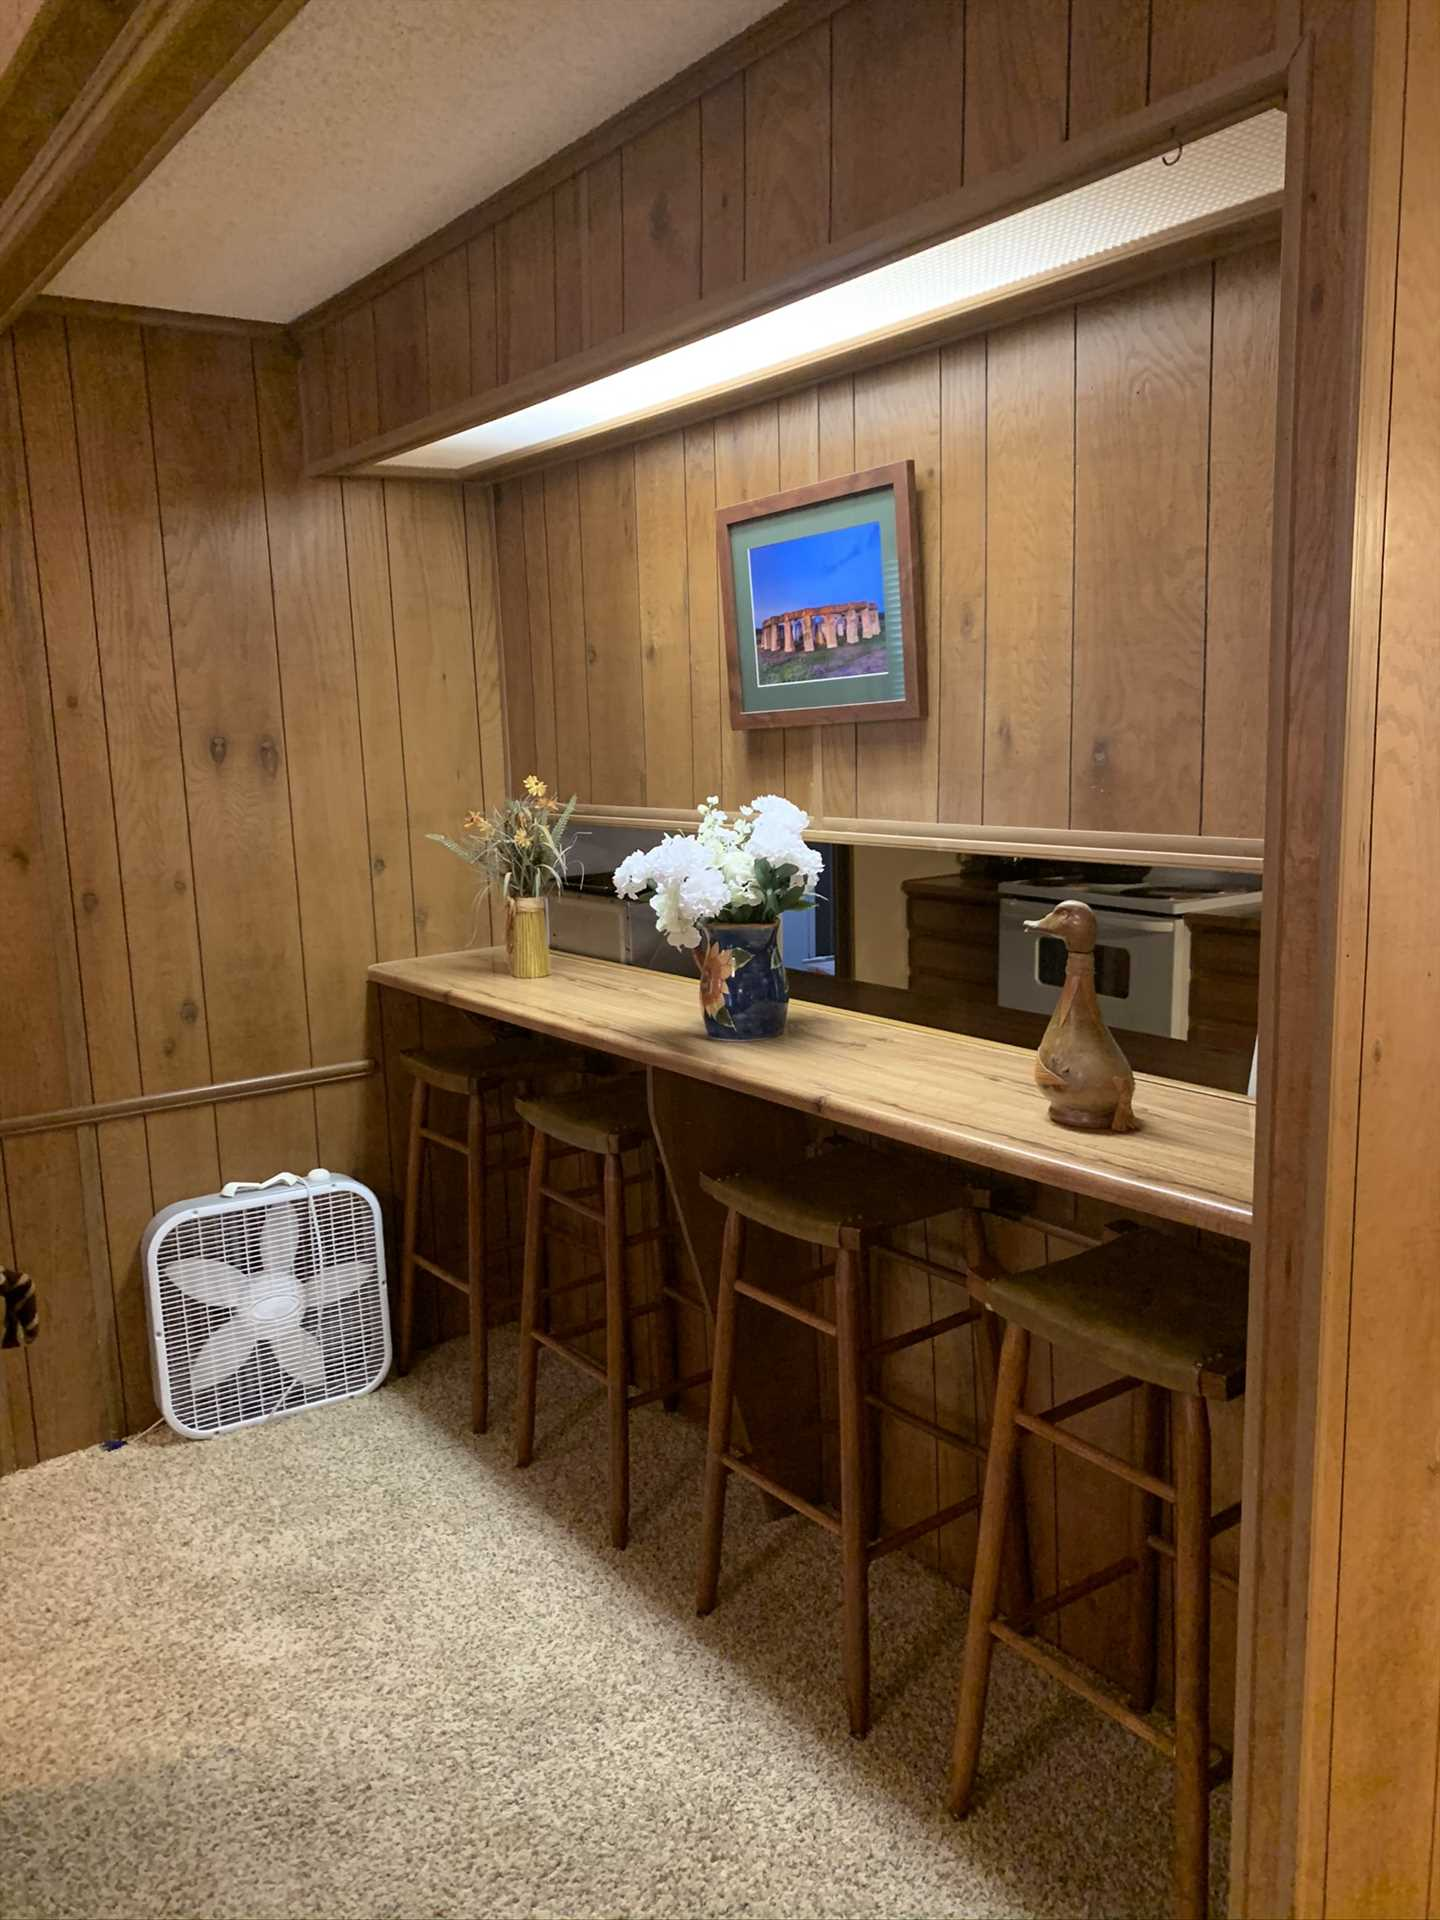 Catch up with family and friends in the unique bar area!